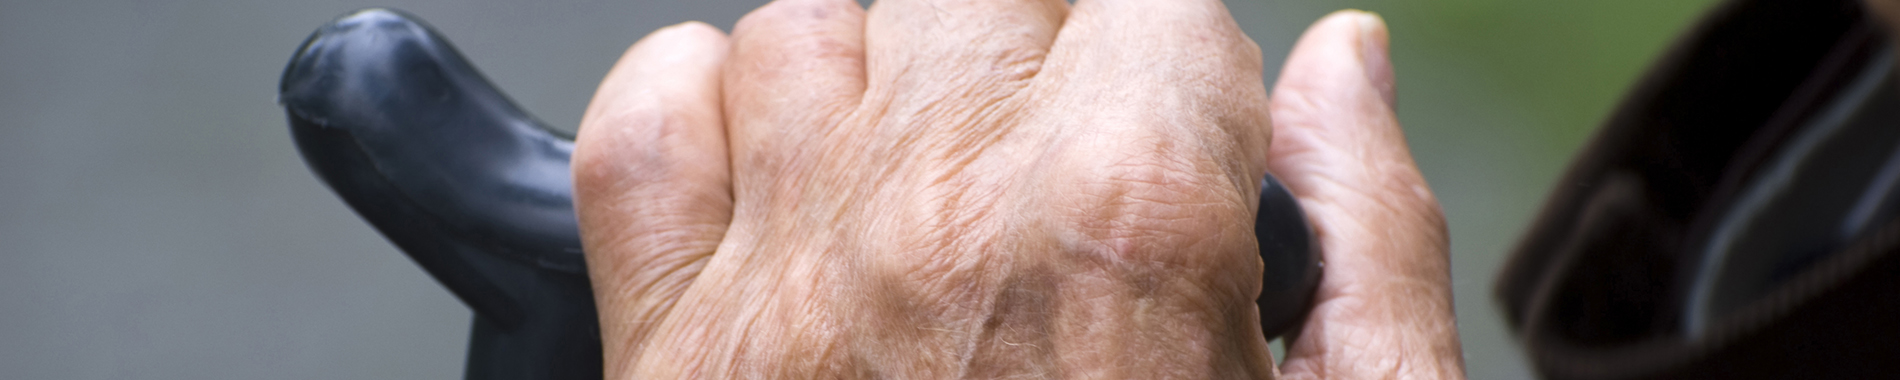 Hand of older patient